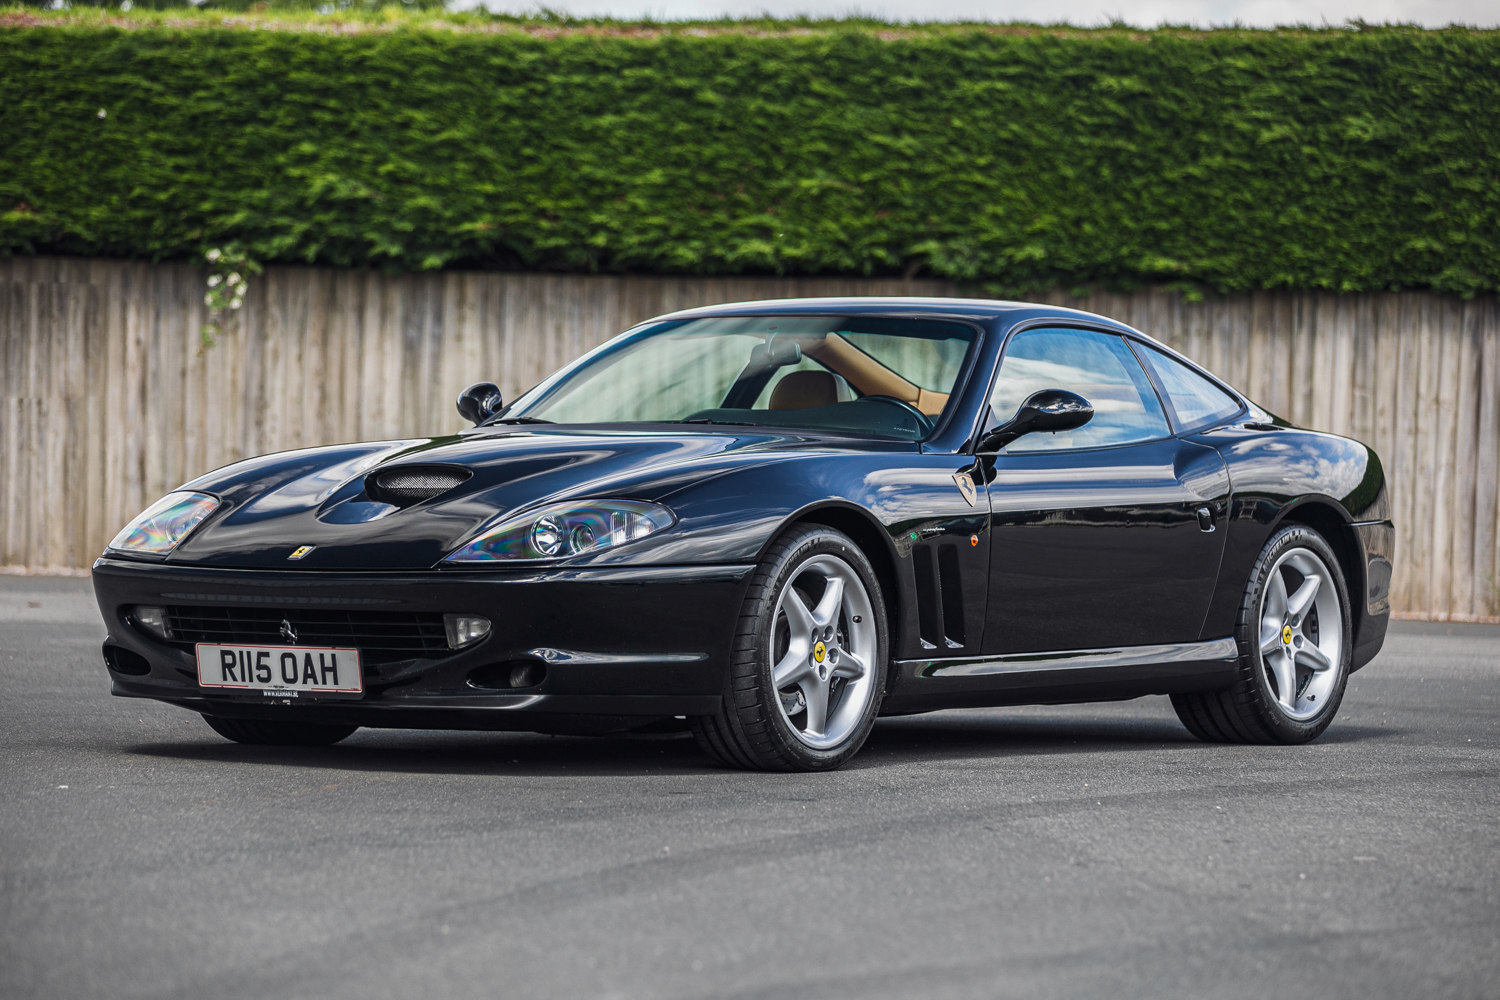 Lot 421 - 1997 Ferrari 550 Maranello